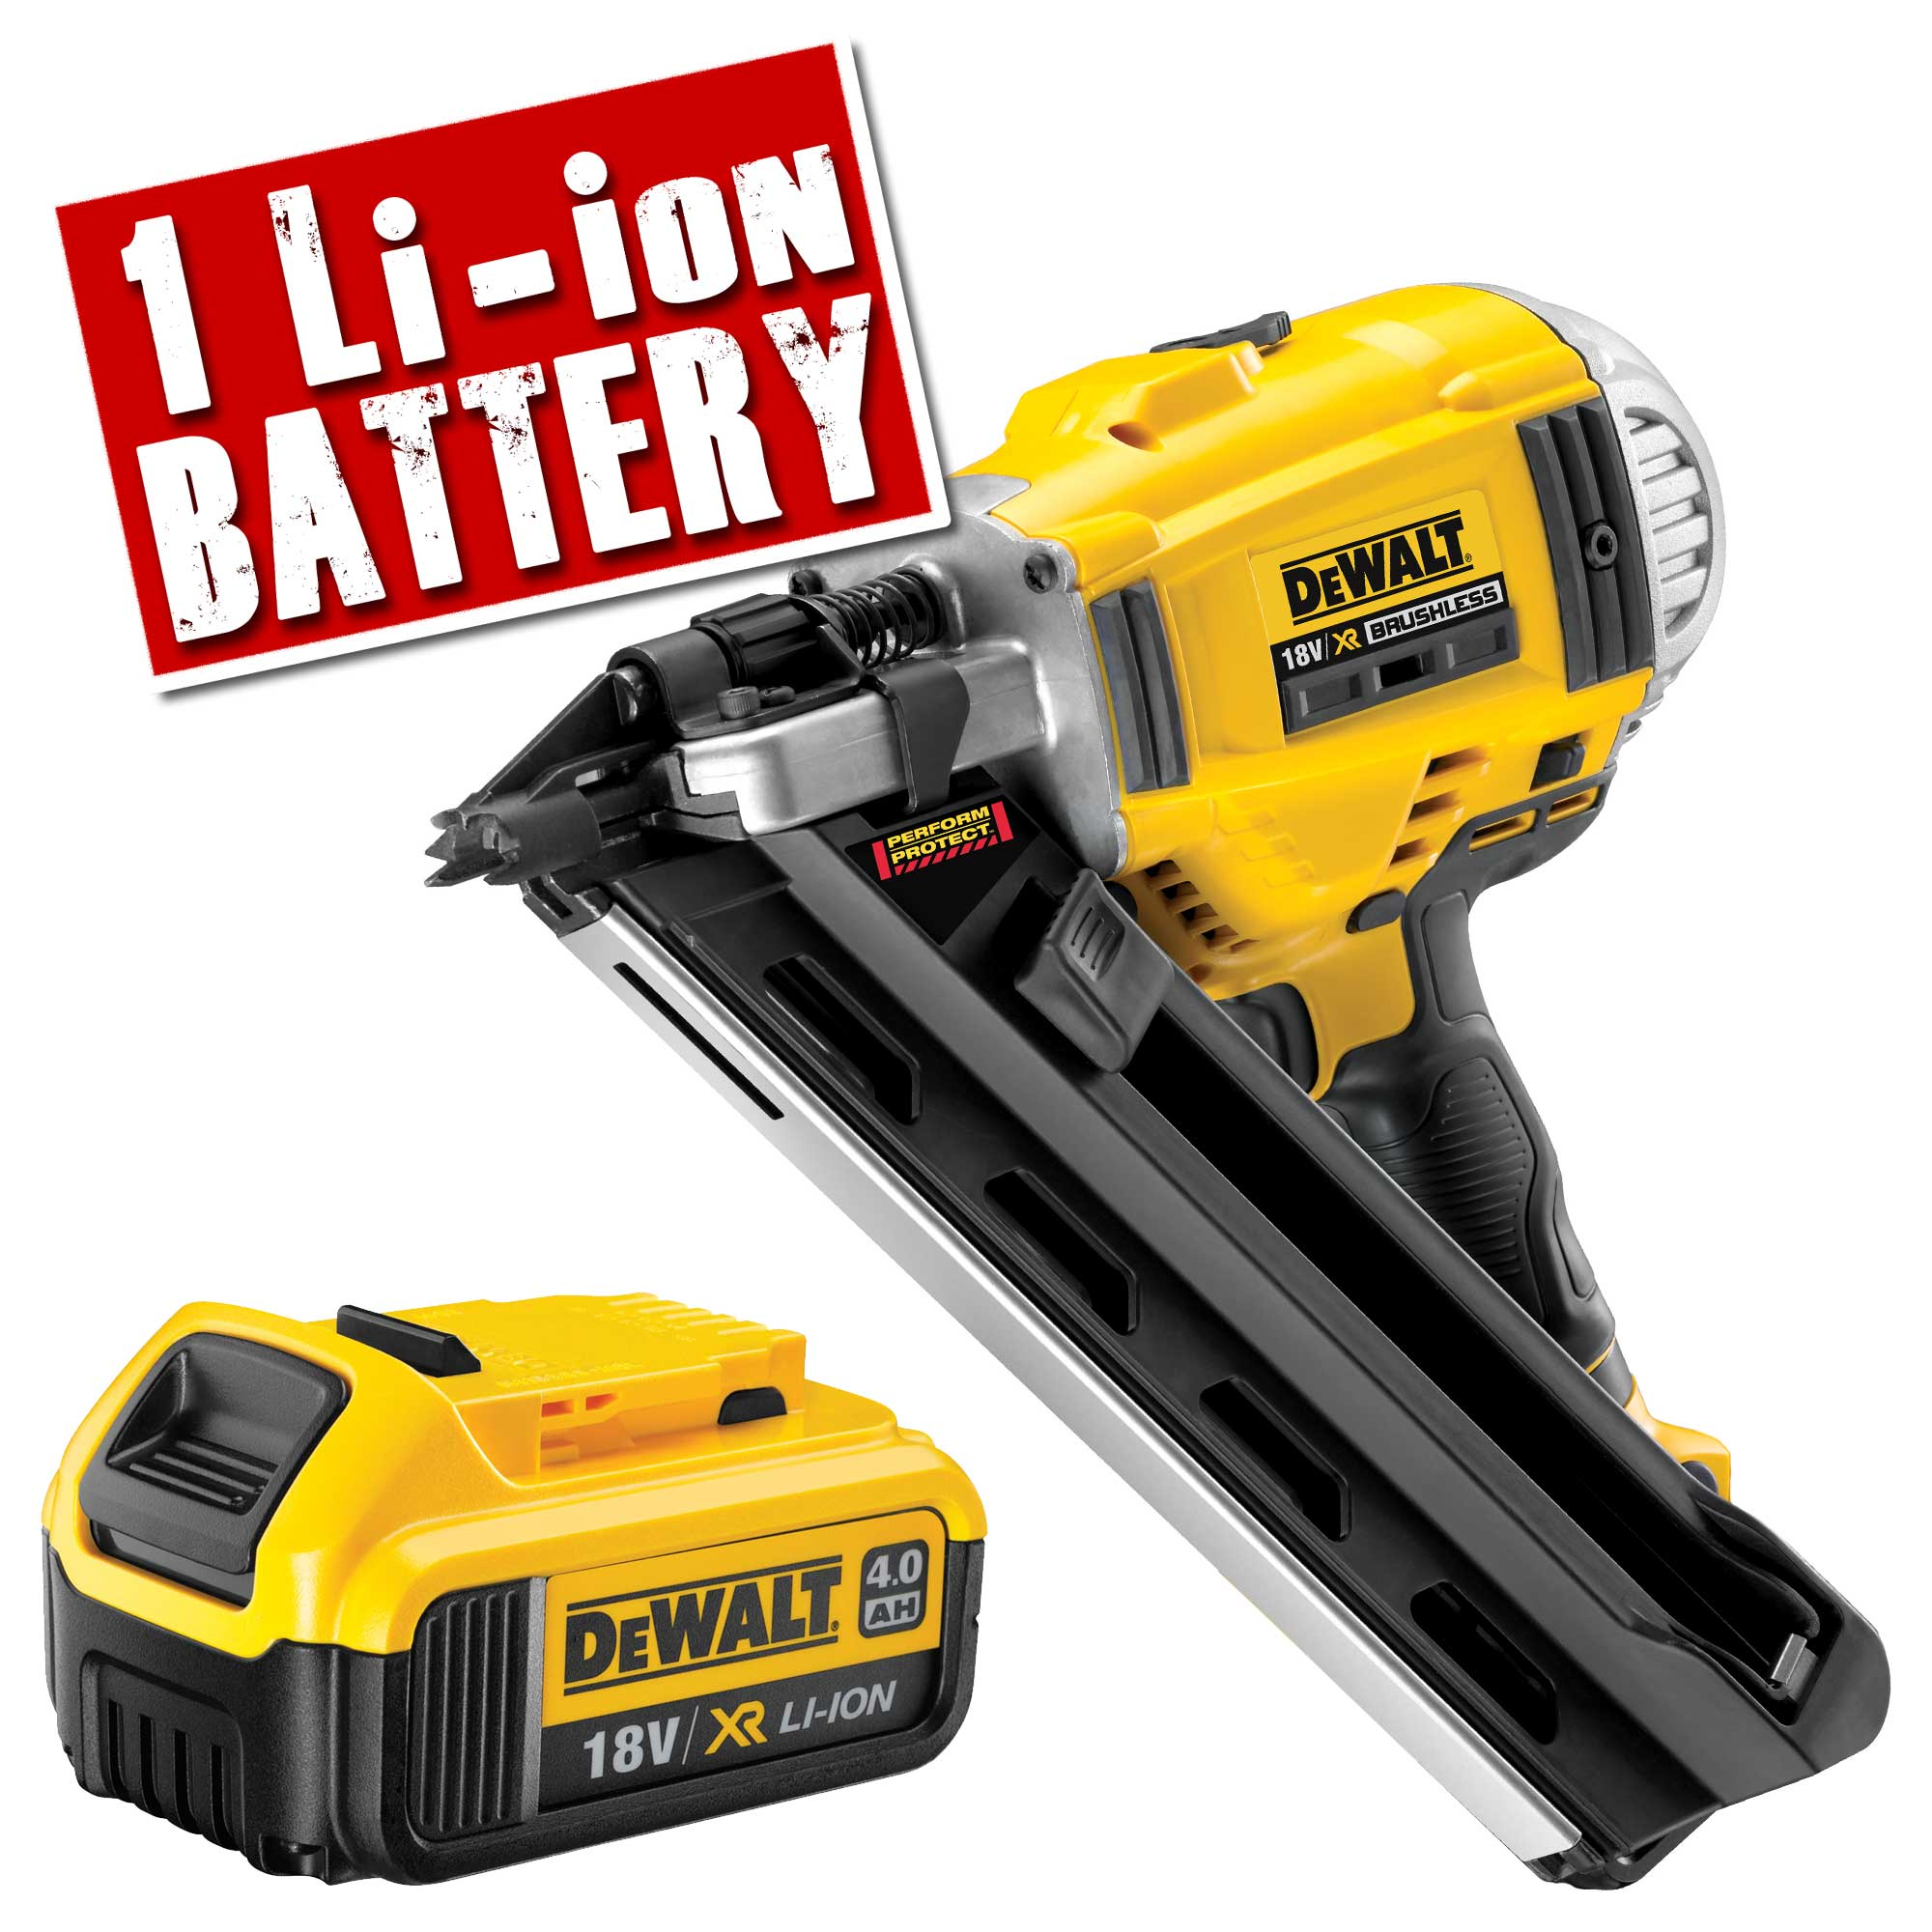 dewalt dcn692n4 dewalt cordless 18v xr li ion framing nailer body 1 x 40